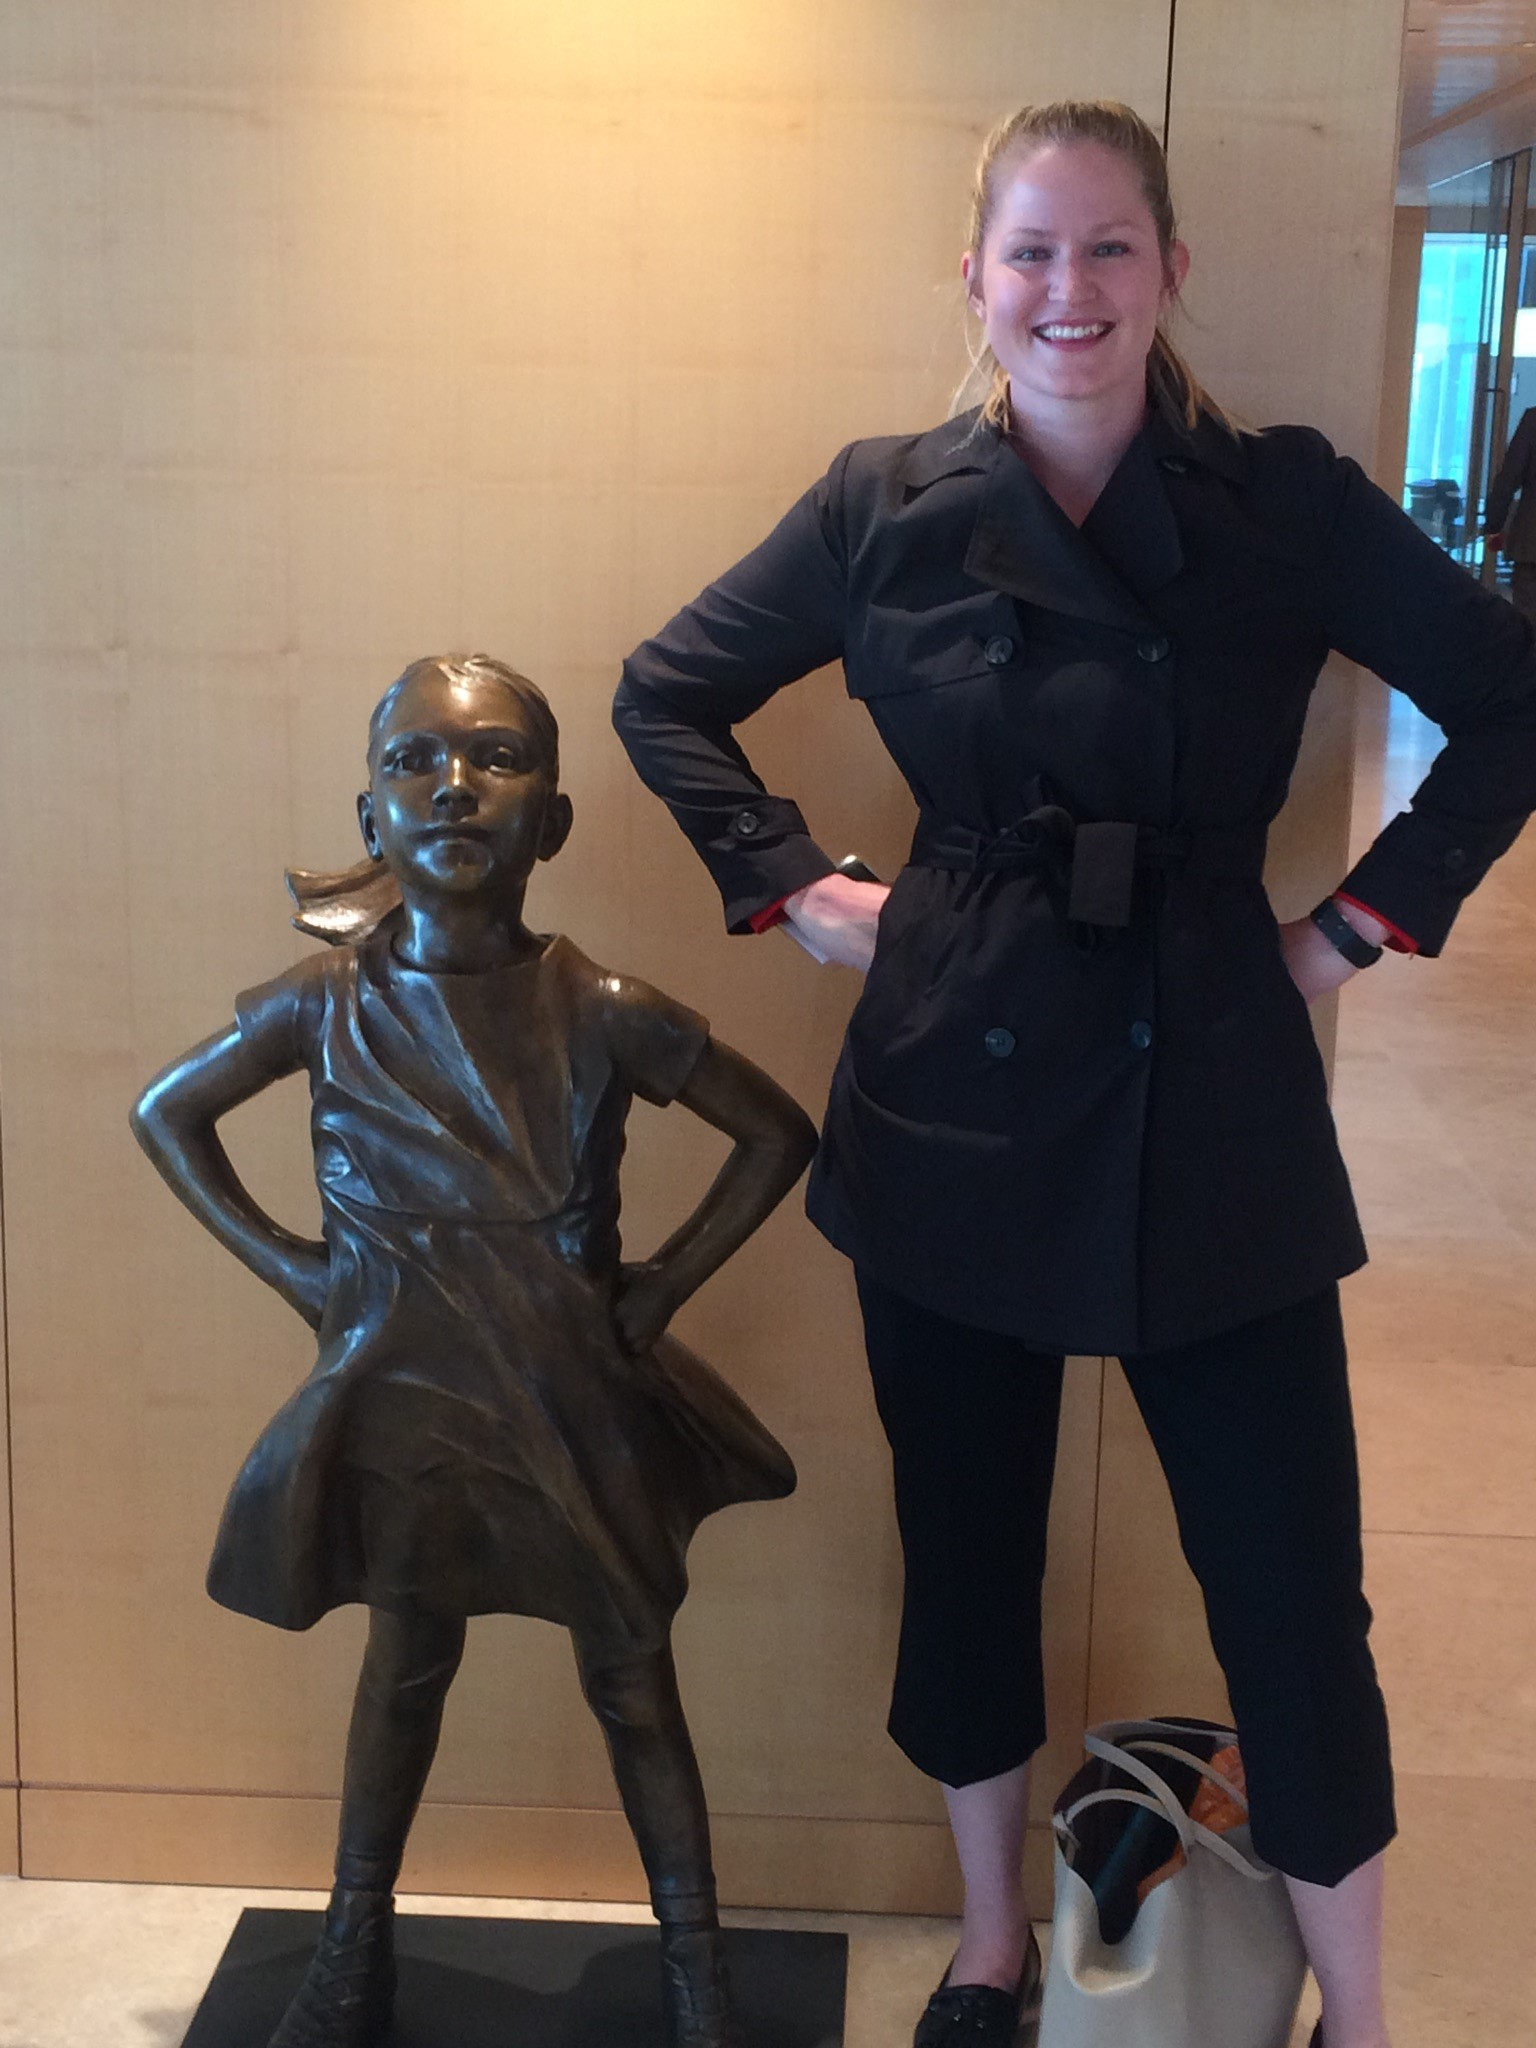 Fearless Girl meets Robyn